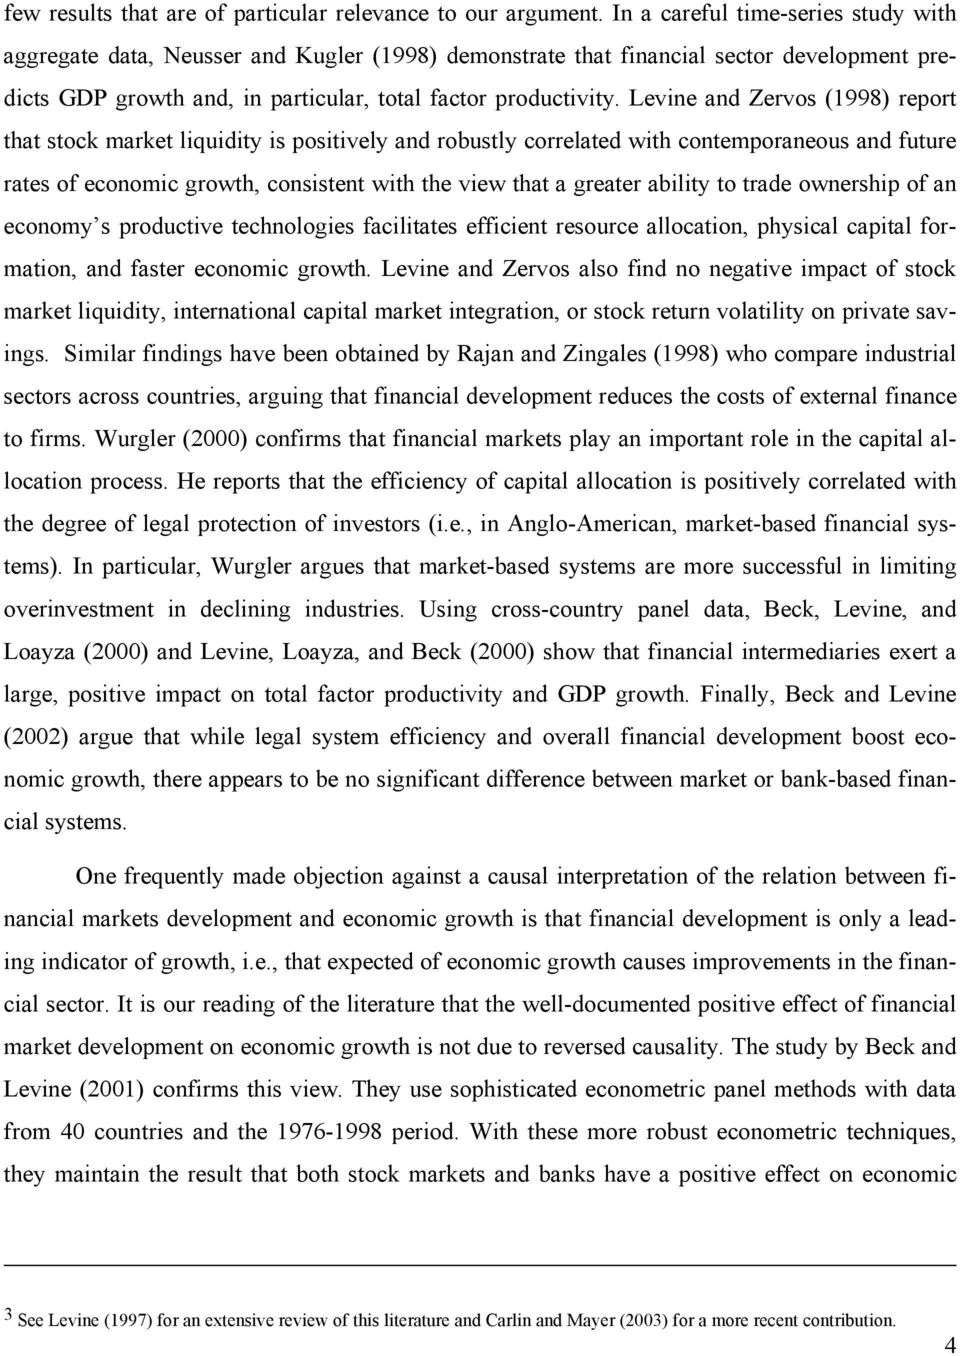 Levine and Zervos (1998) report that stock market liquidity is positively and robustly correlated with contemporaneous and future rates of economic growth, consistent with the view that a greater